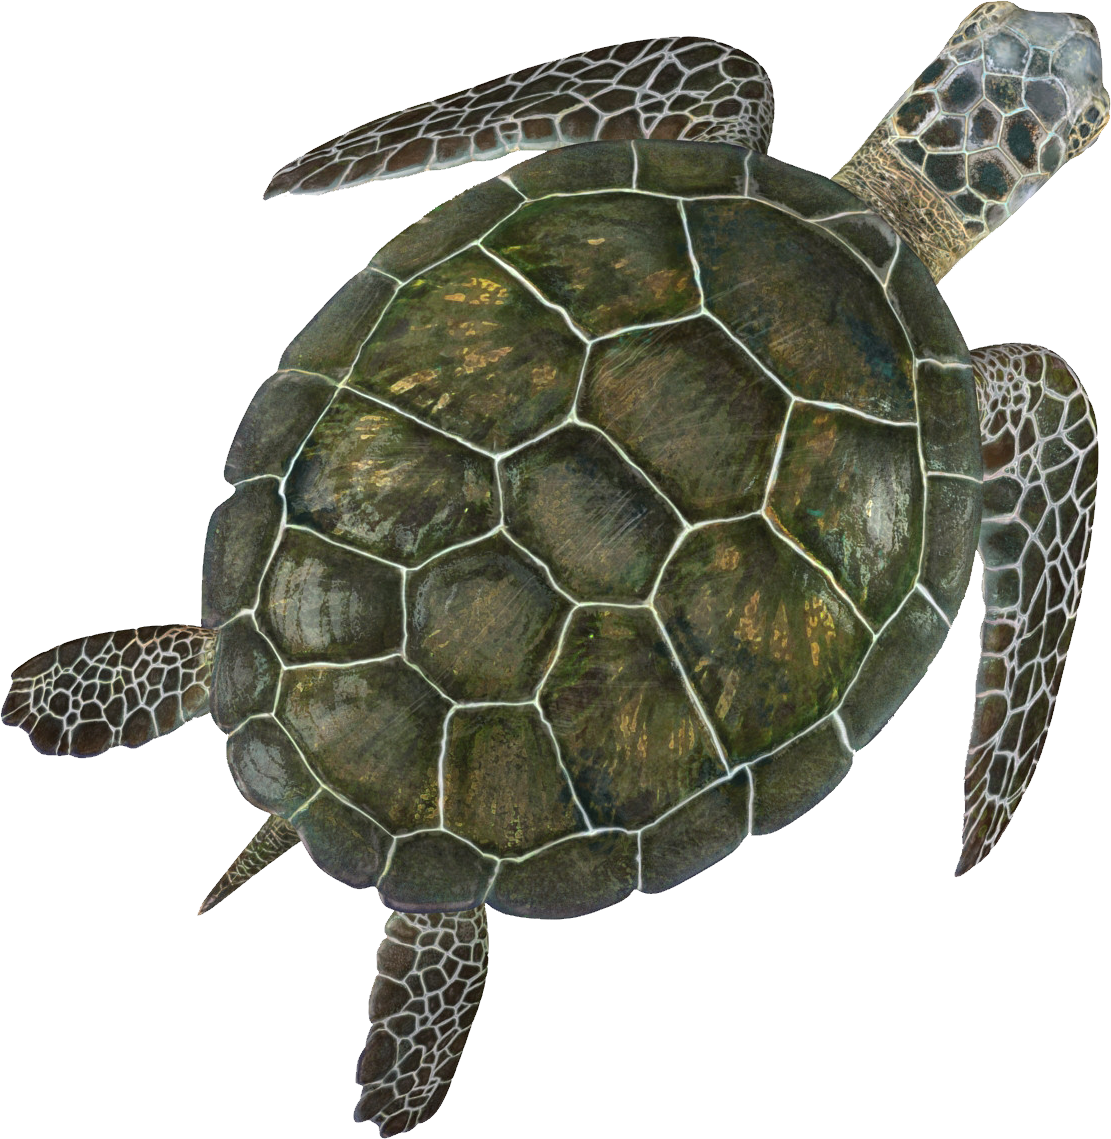 Turtle PNG - 24621